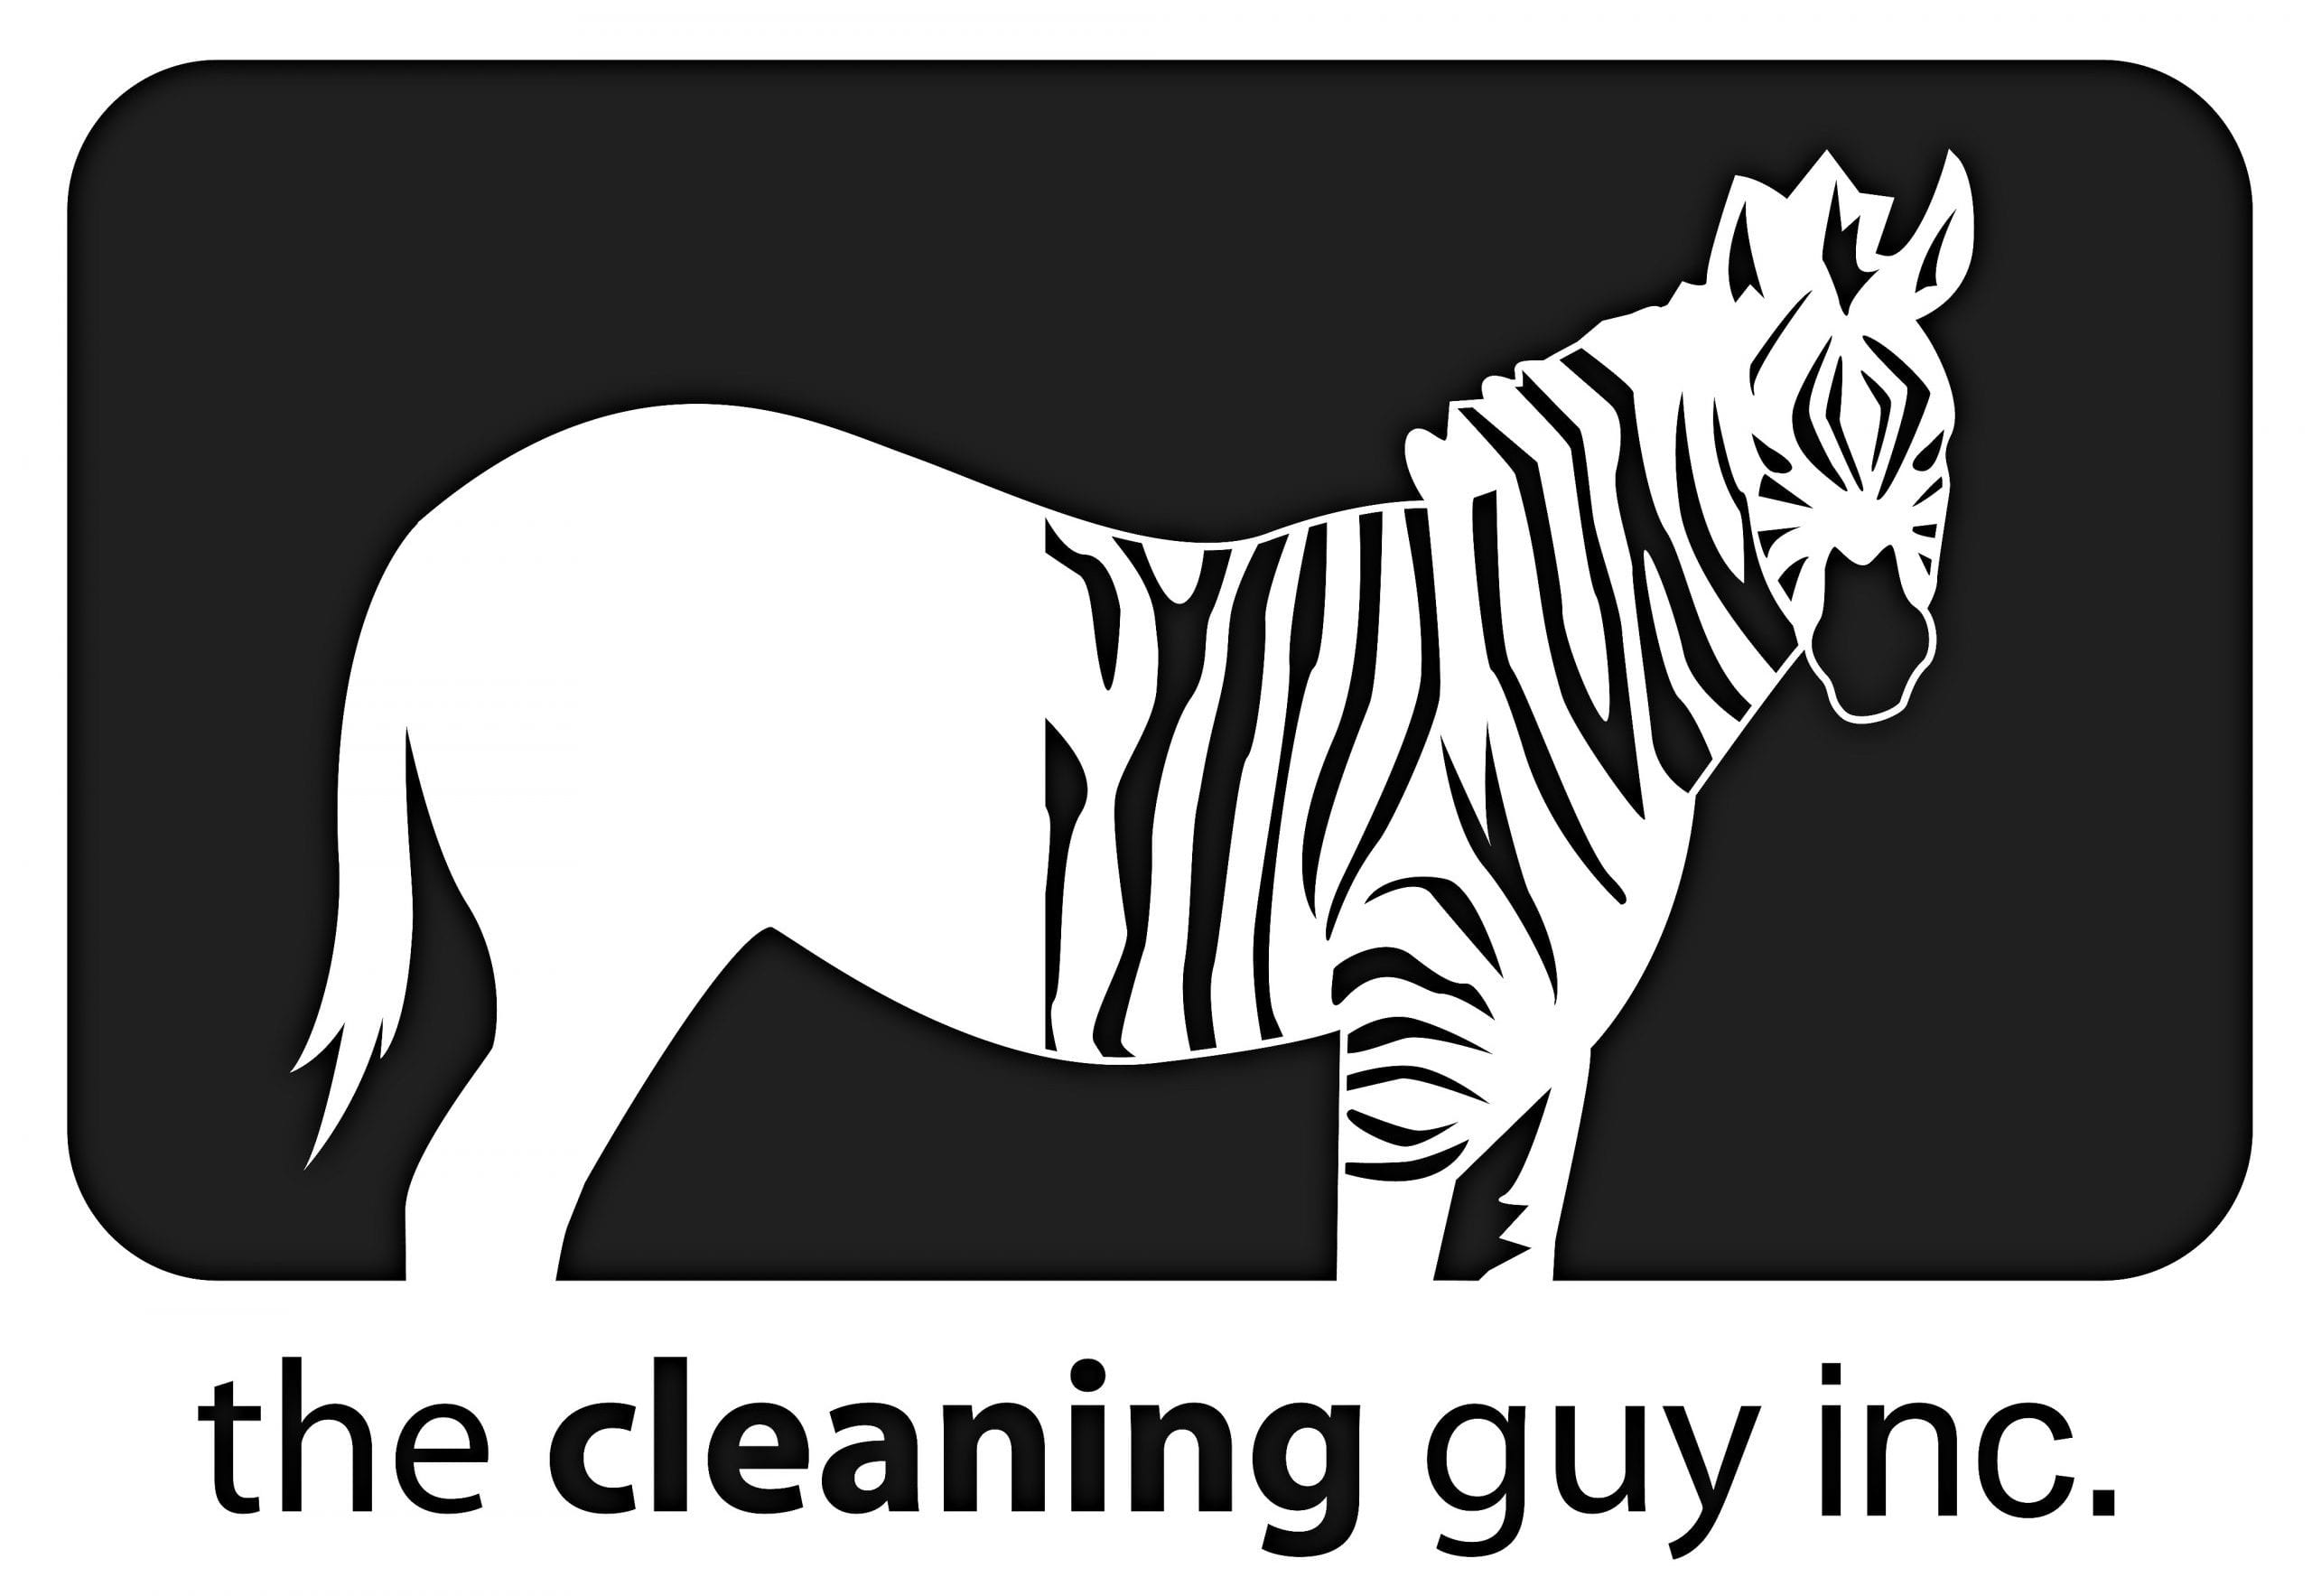 The Cleaning Guy logo